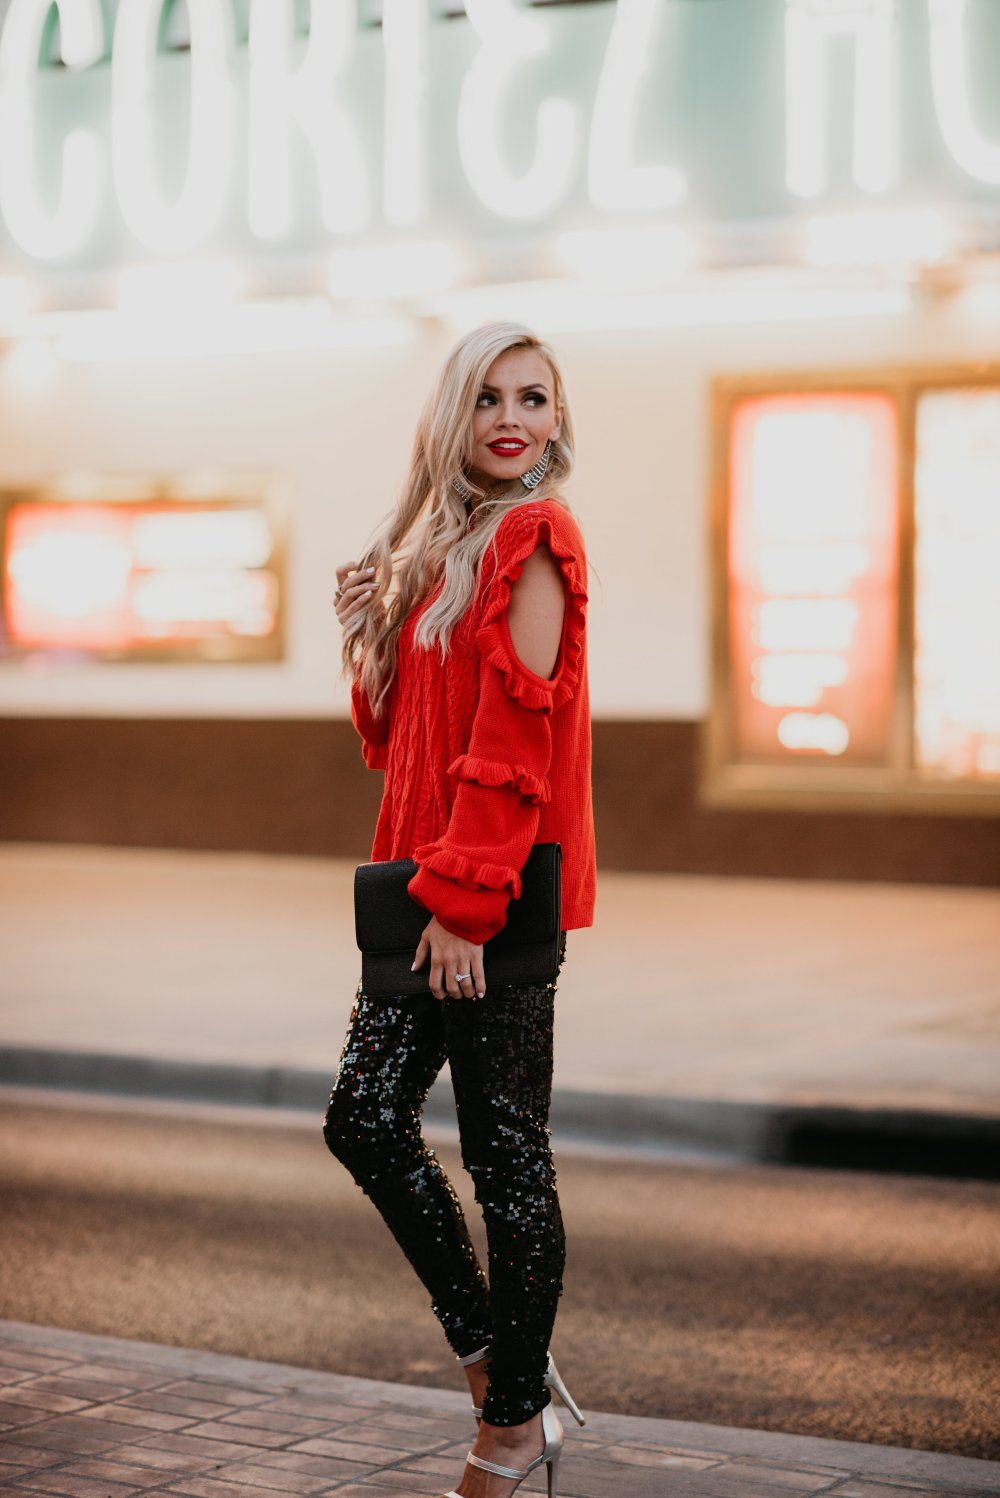 What is your Holiday Style? I love the glam look with these sequin pants and POP of red sweater! The key hole and ruffles on the arm are perfect details! These pants can be worn for Christmas and New Years! Get this glam look from Express today for your holiday parties! #trulydestiny #holidayglam #holidayoutfit